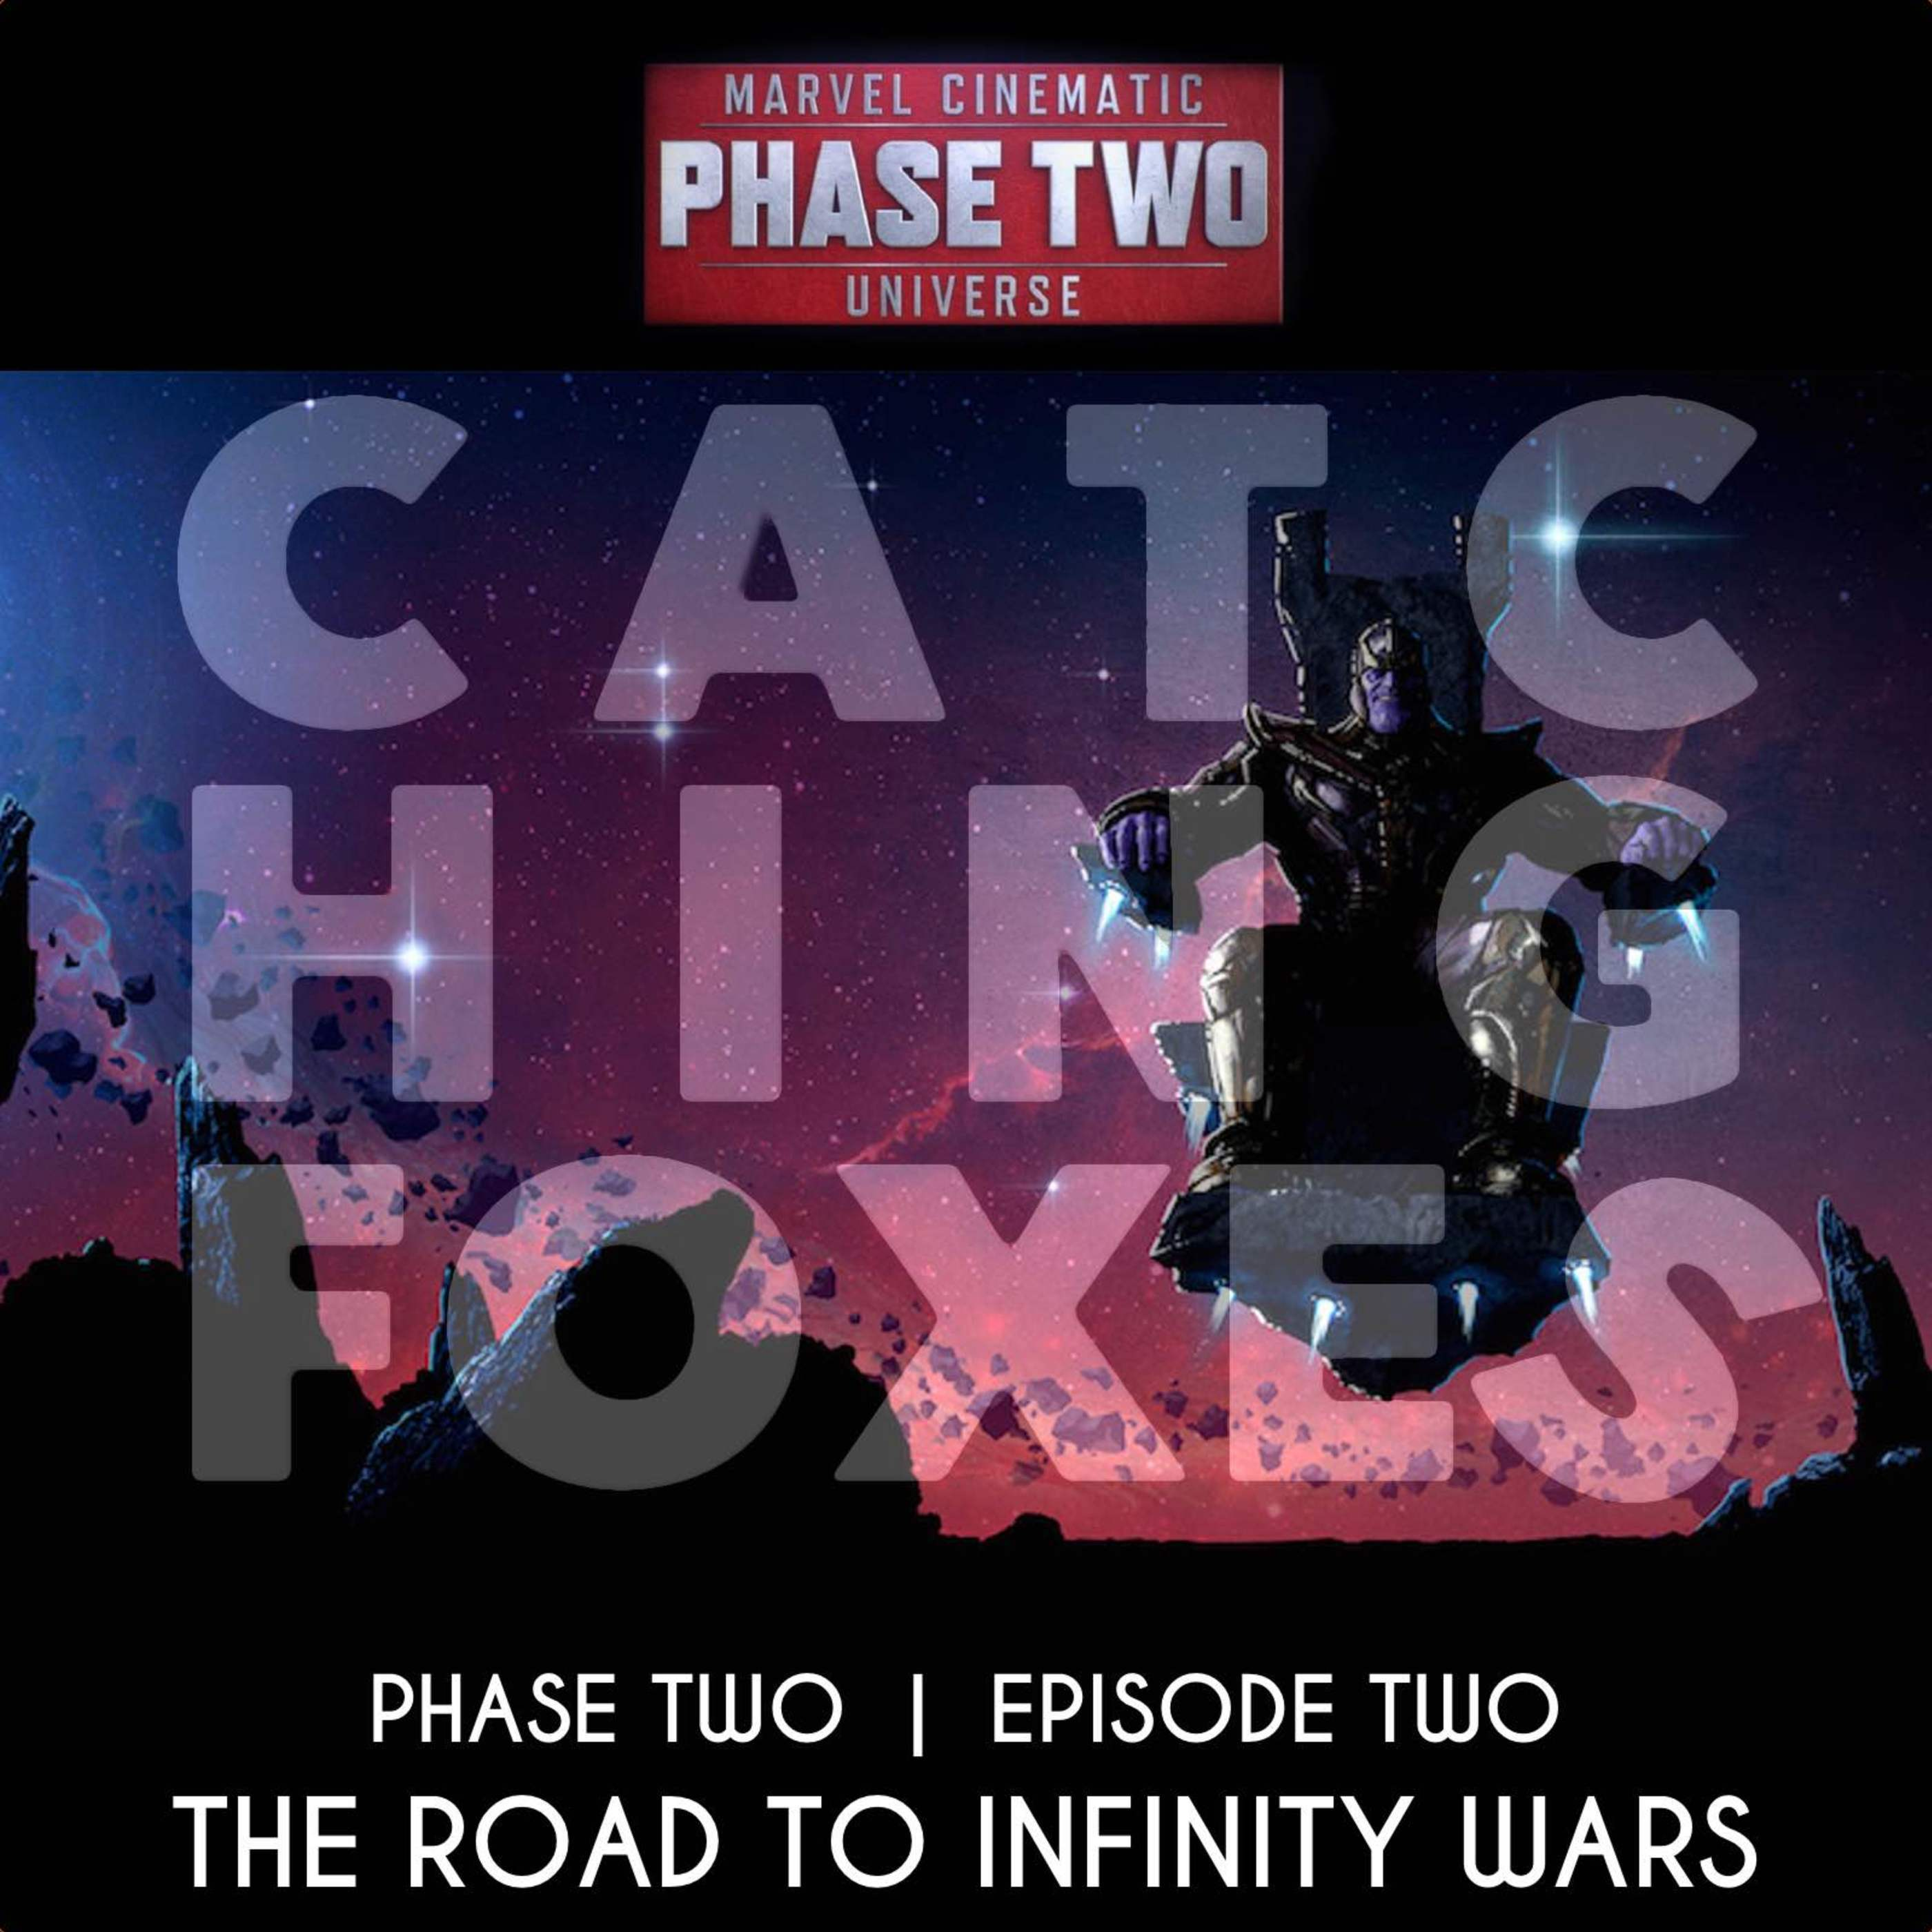 The Road to Infinity Wars! Phase Two, Episode Two